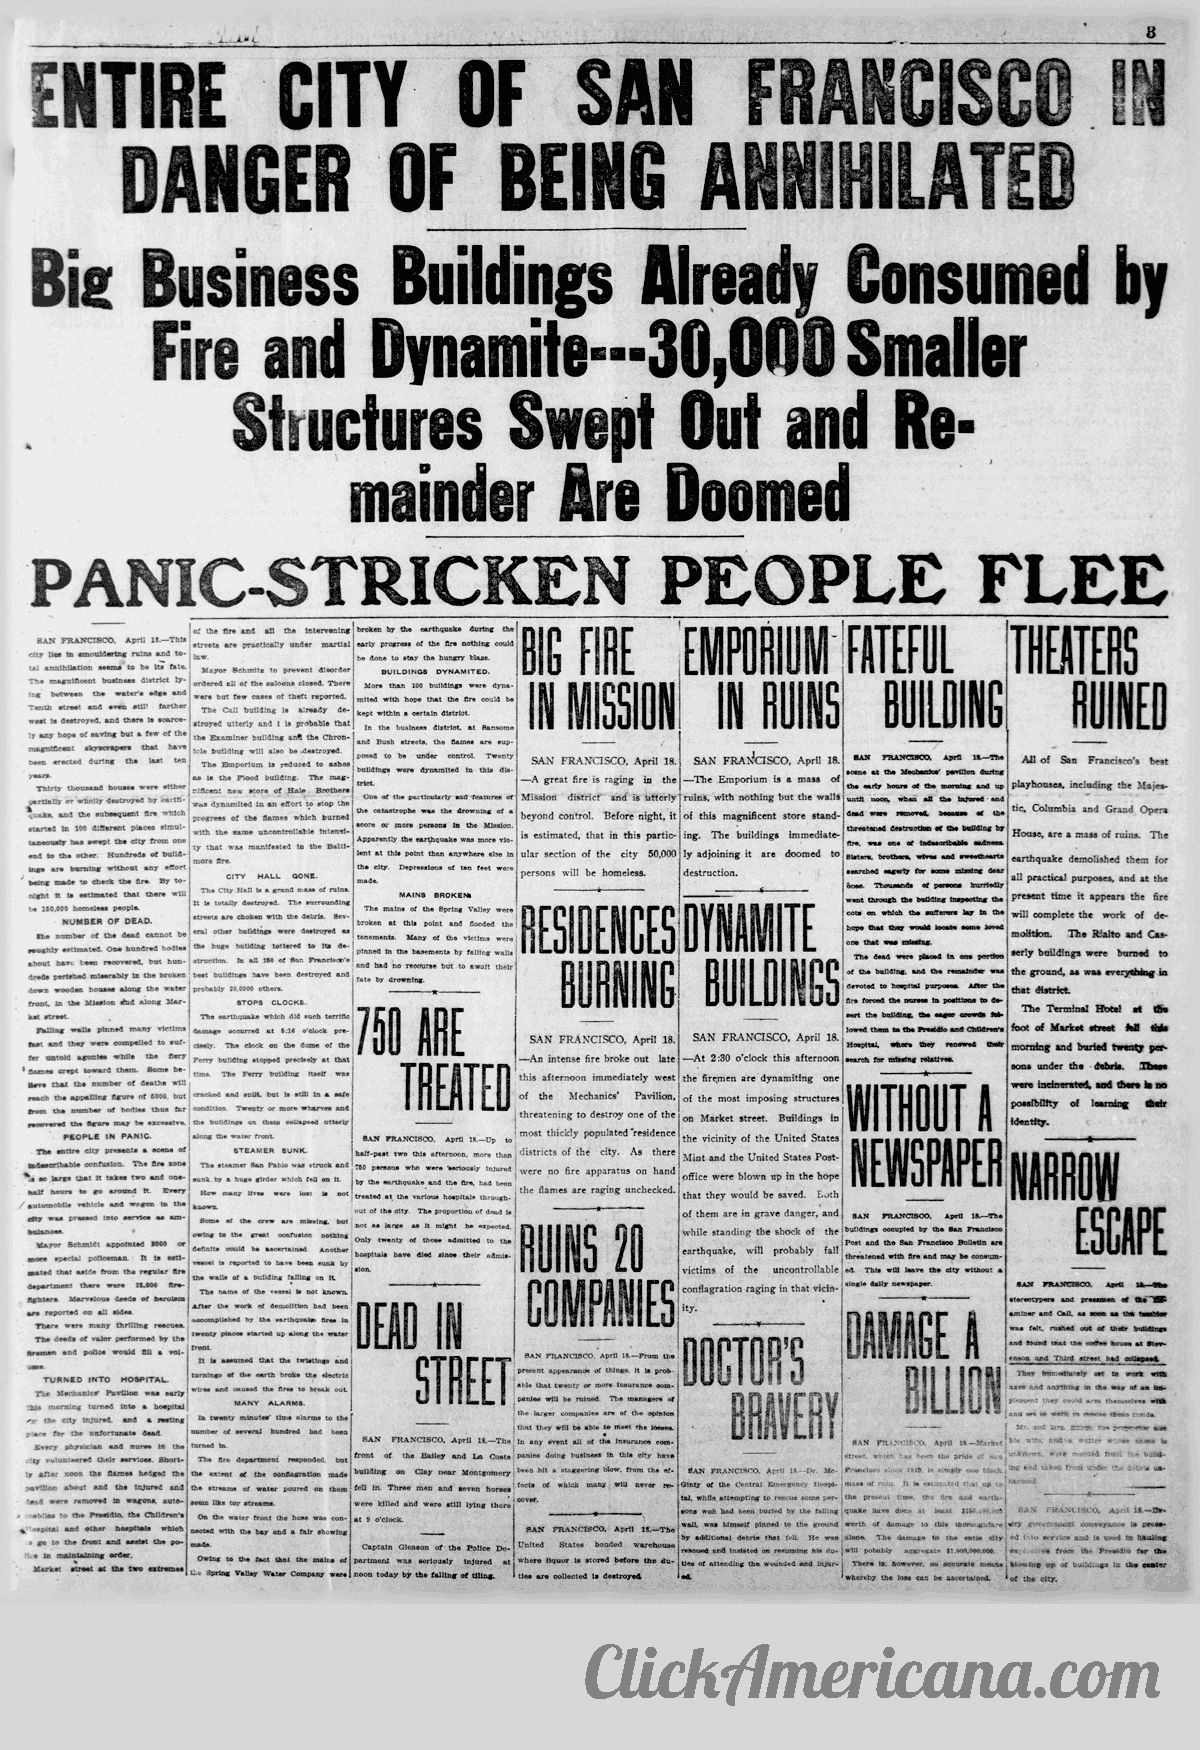 First chaotic news reports from the devastating 1906 San Francisco earthquake and fire (3)